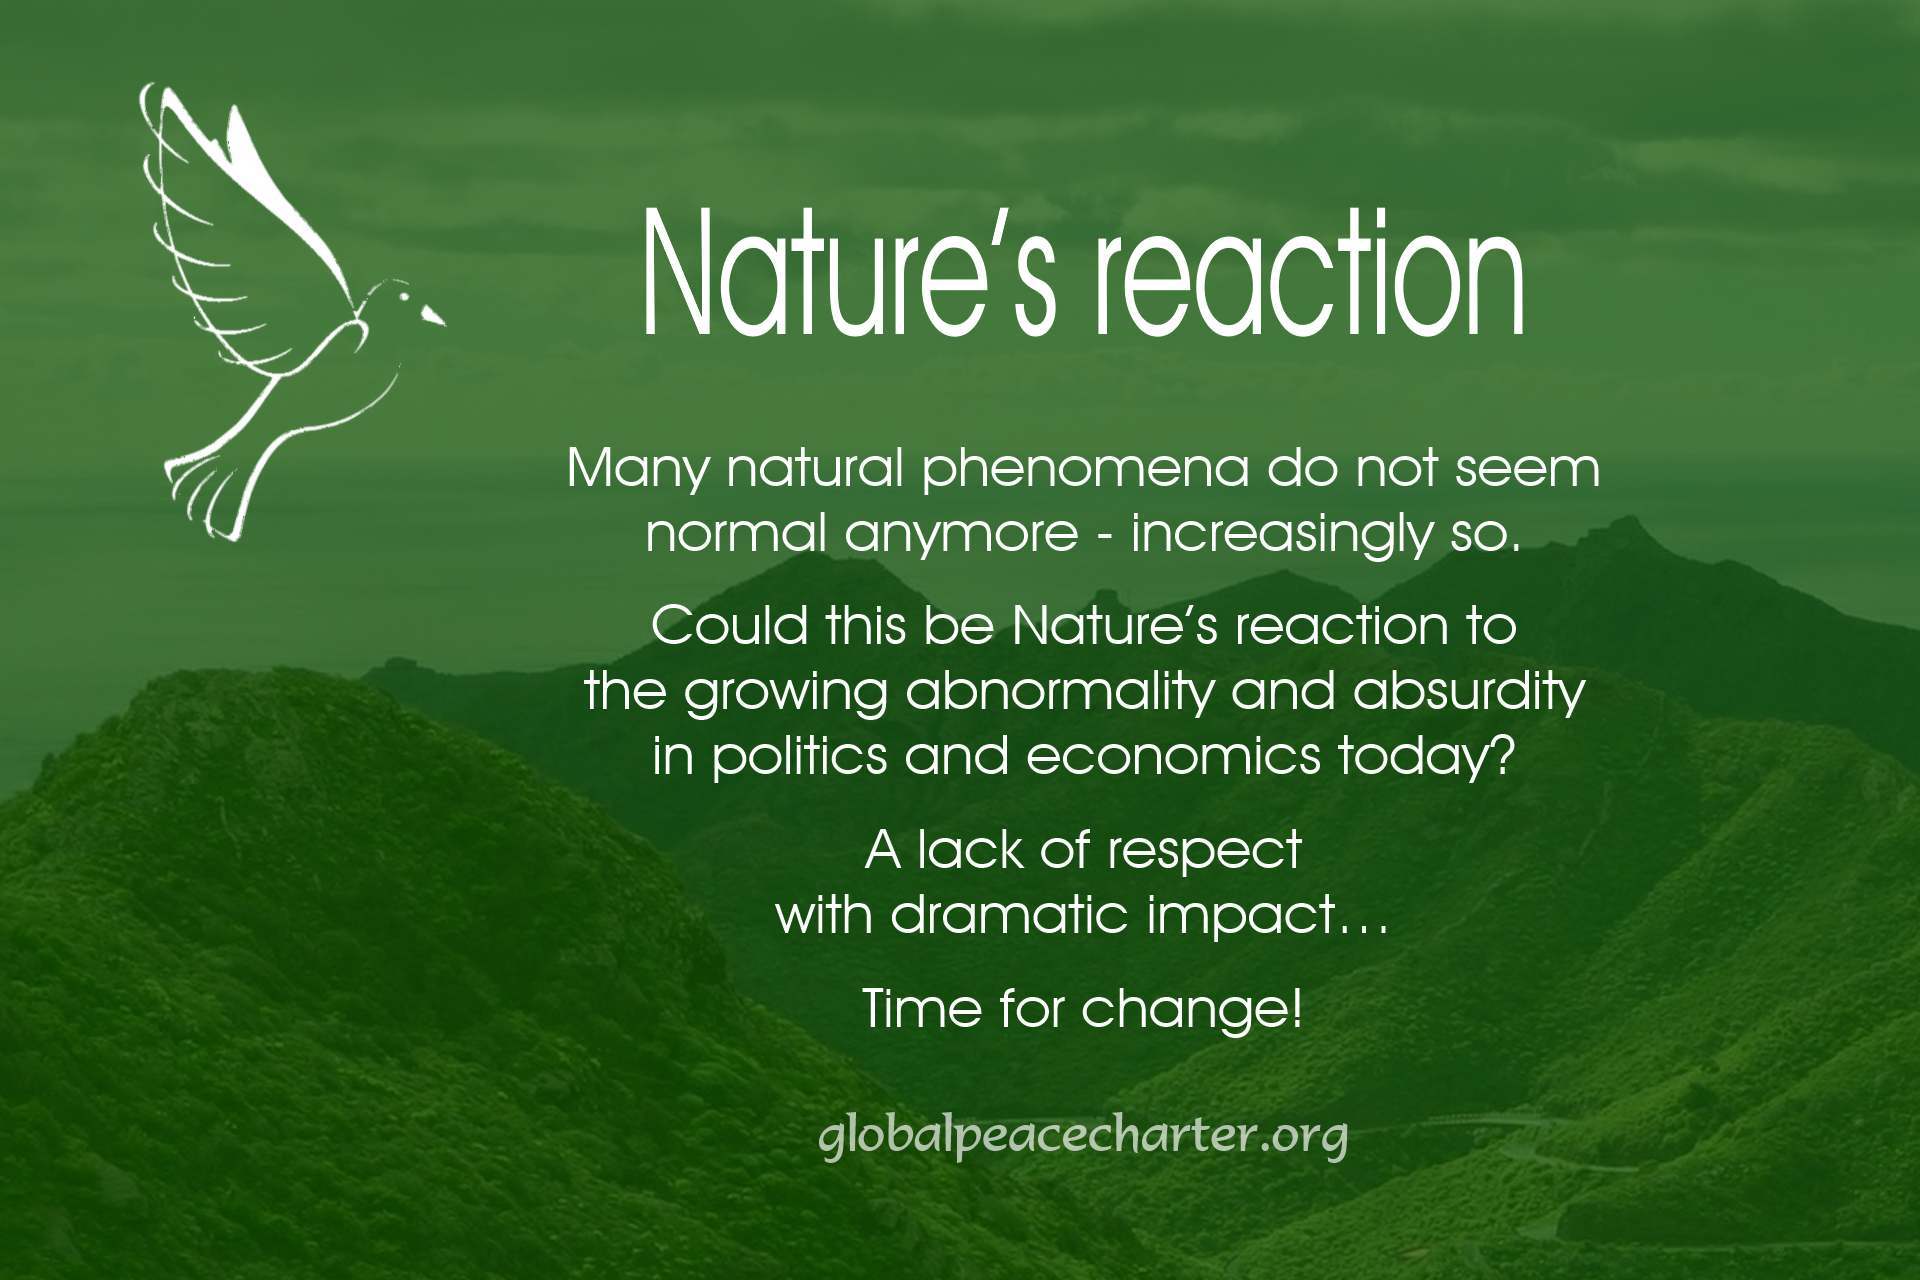 Nature's reaction